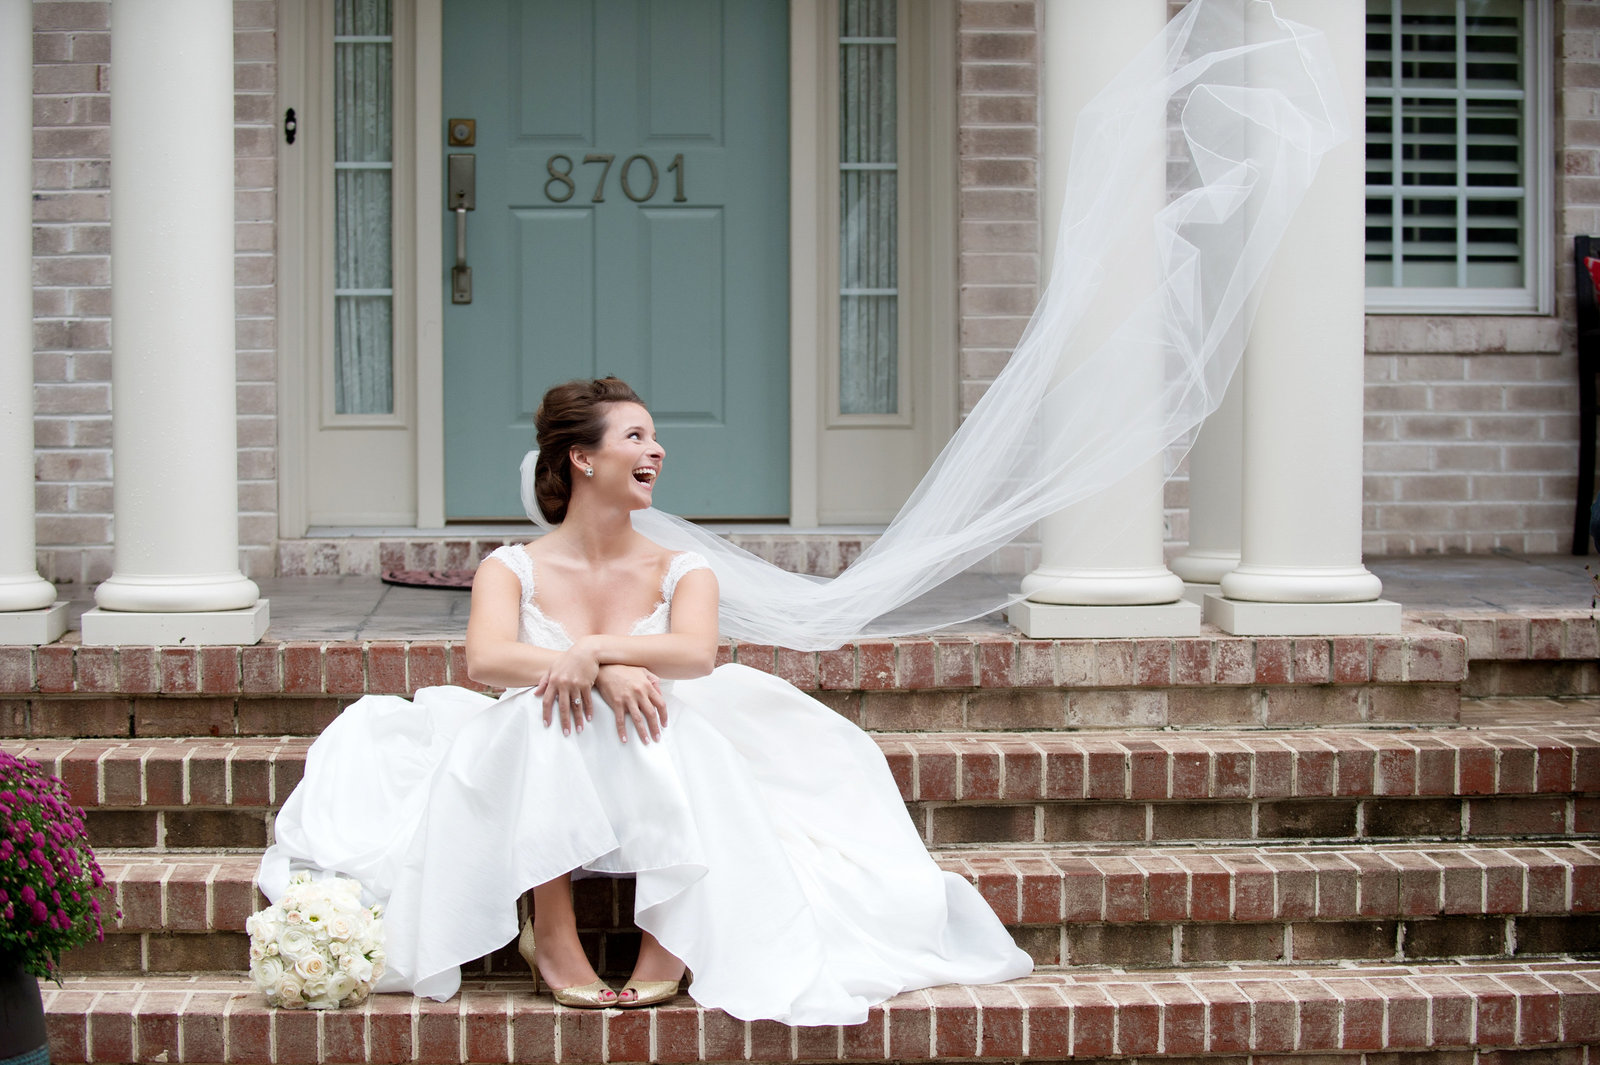 bride's veil flies up during a portrait on stairs